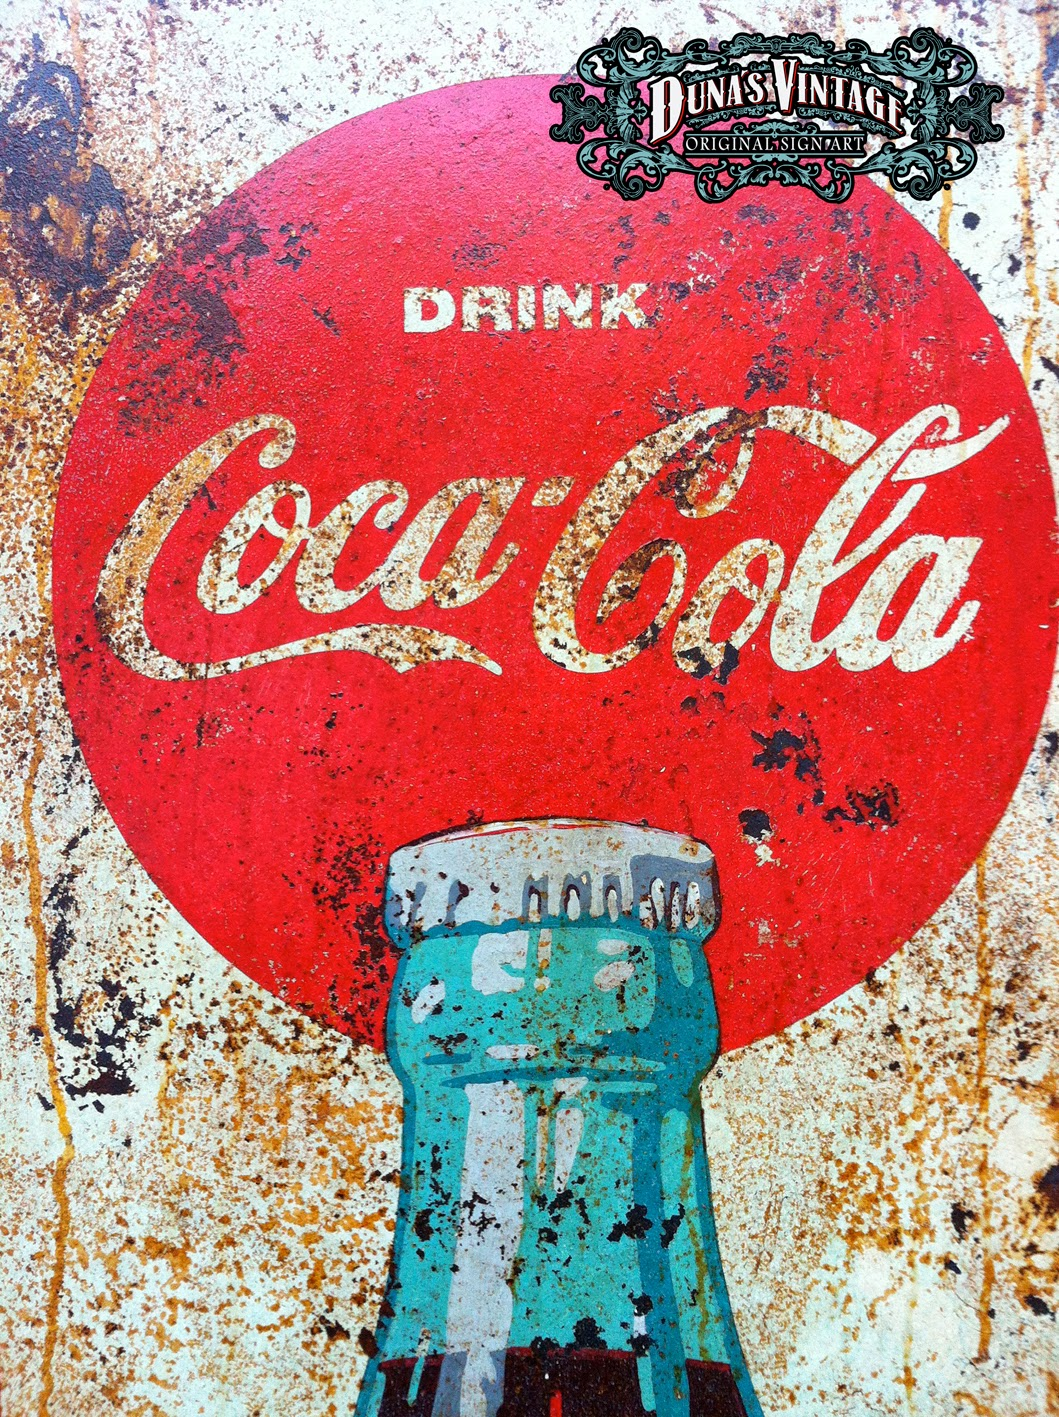 Duna s vintage coca cola better with coke duna s vintage for sale 500 - Carteles retro ...